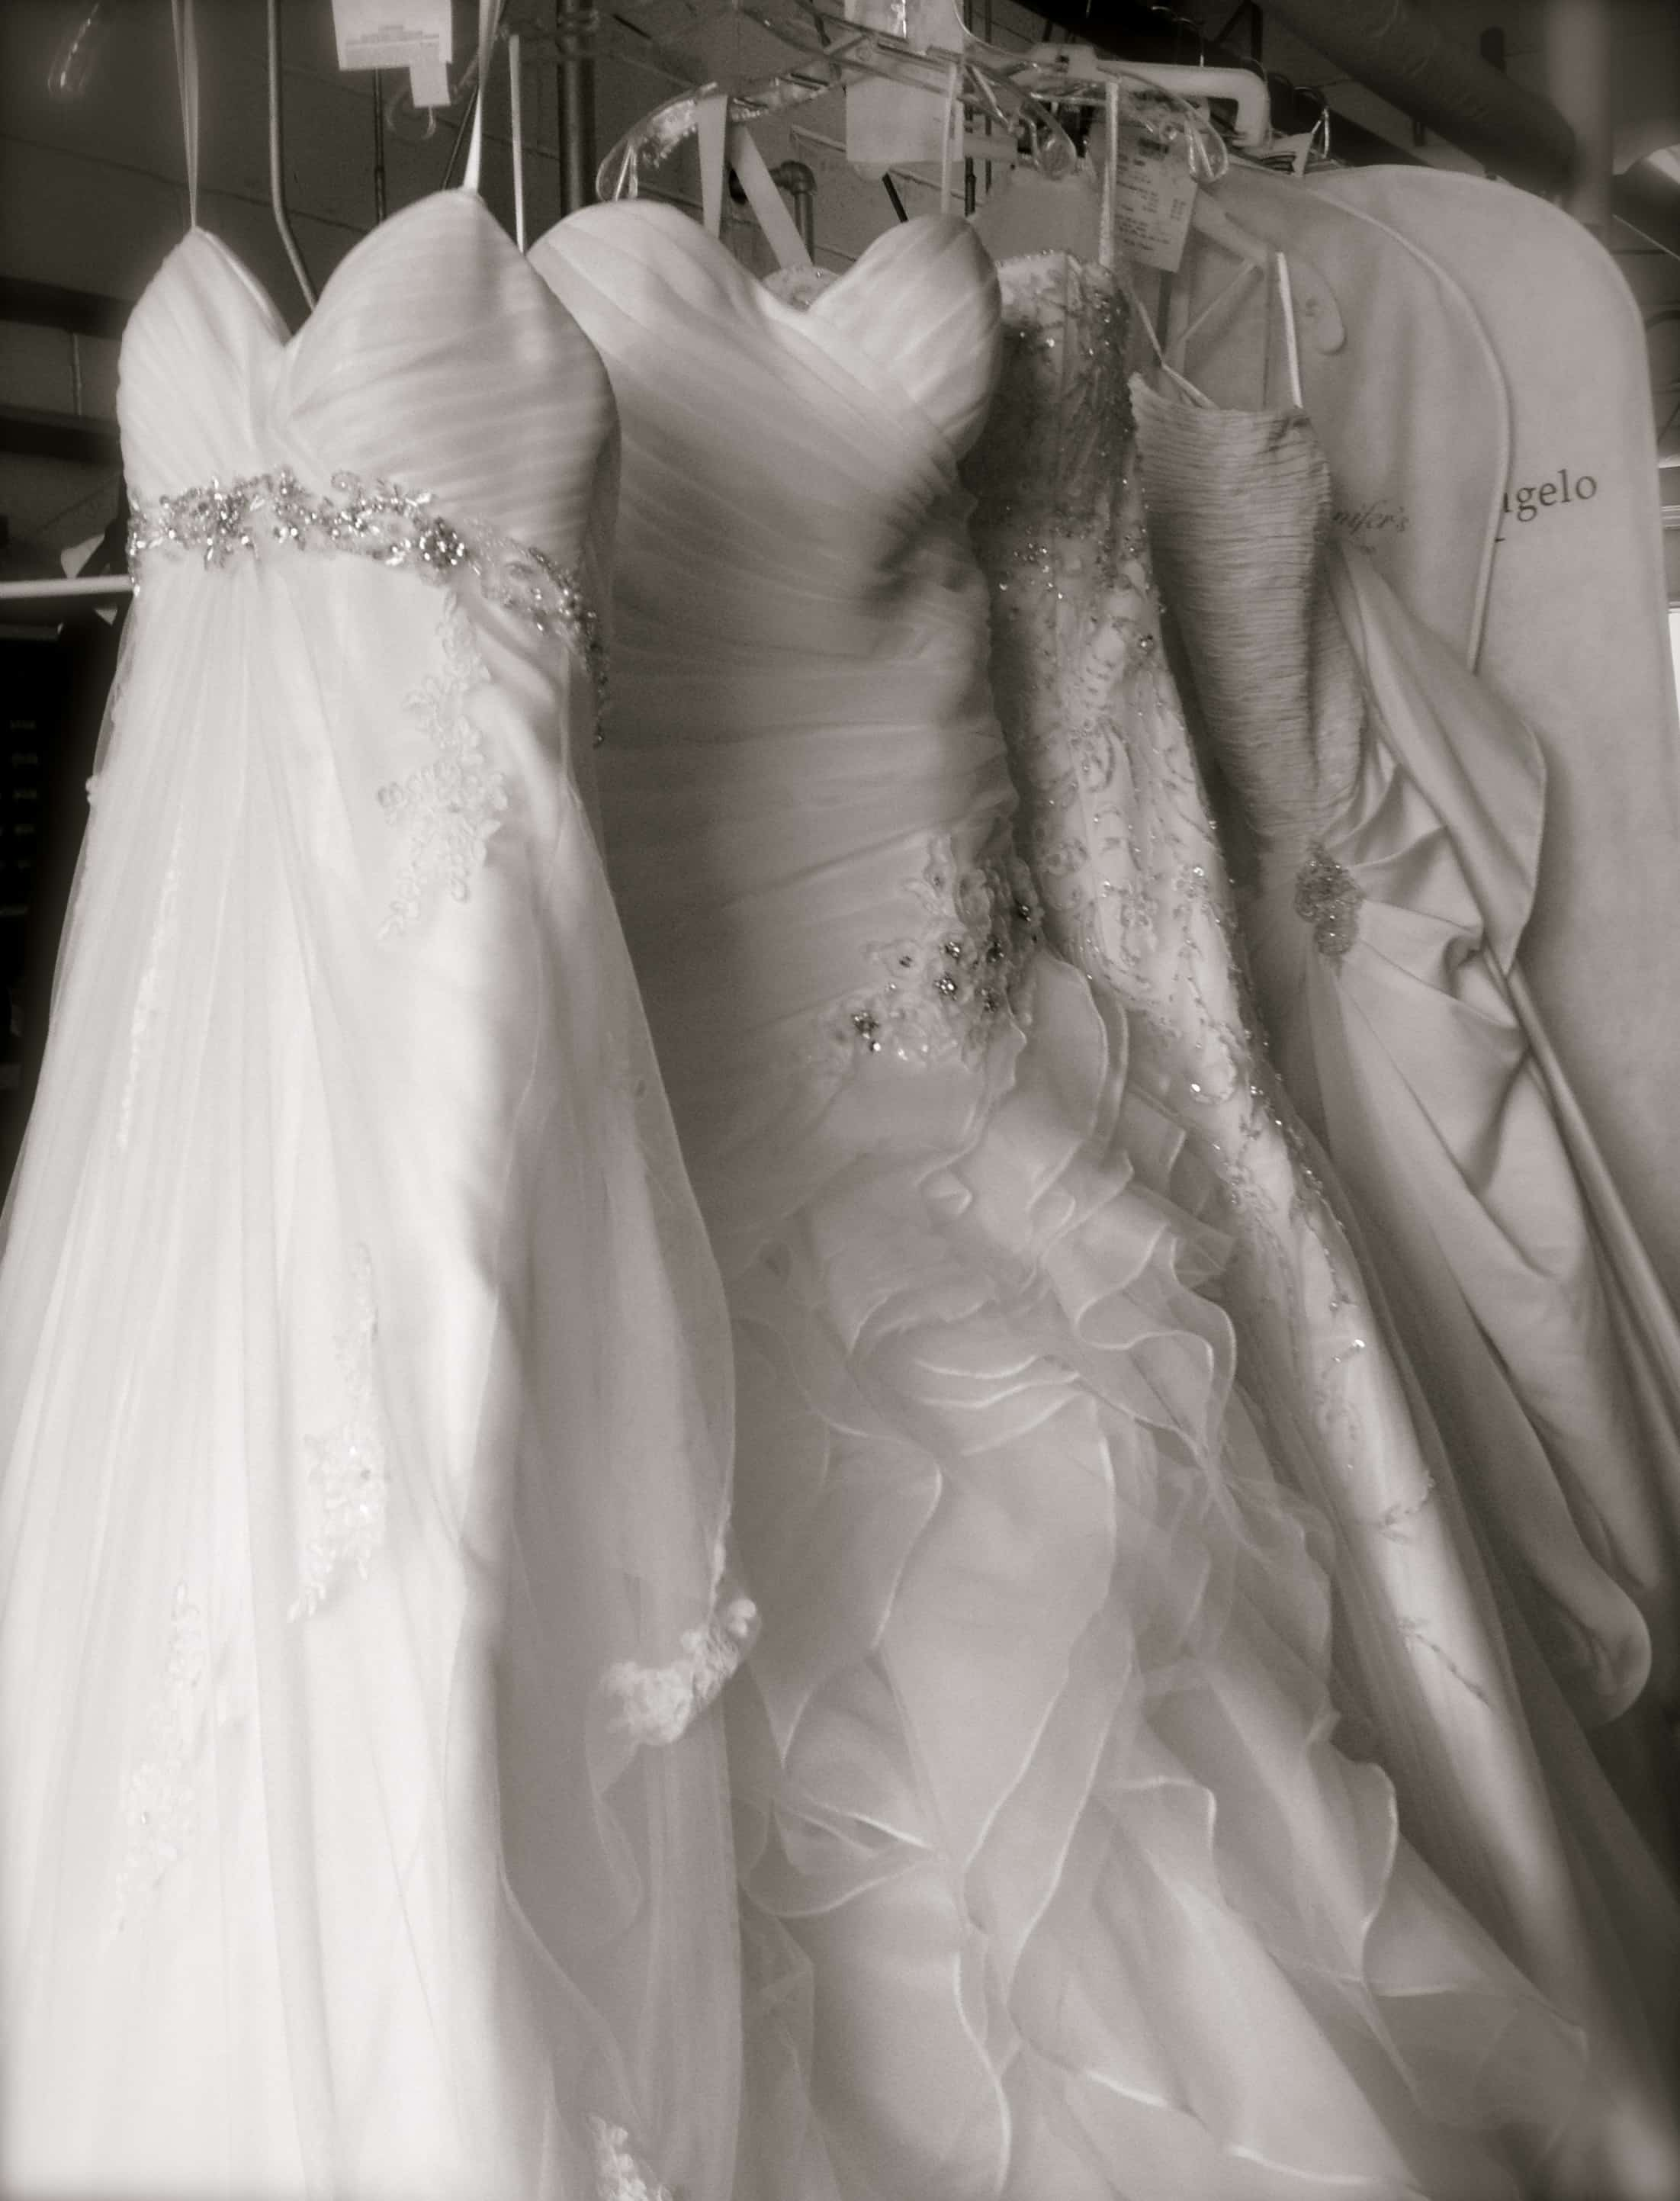 Wedding Dress Cleaning And Preservation.Wedding Dress 6 Kelchner Cleaners